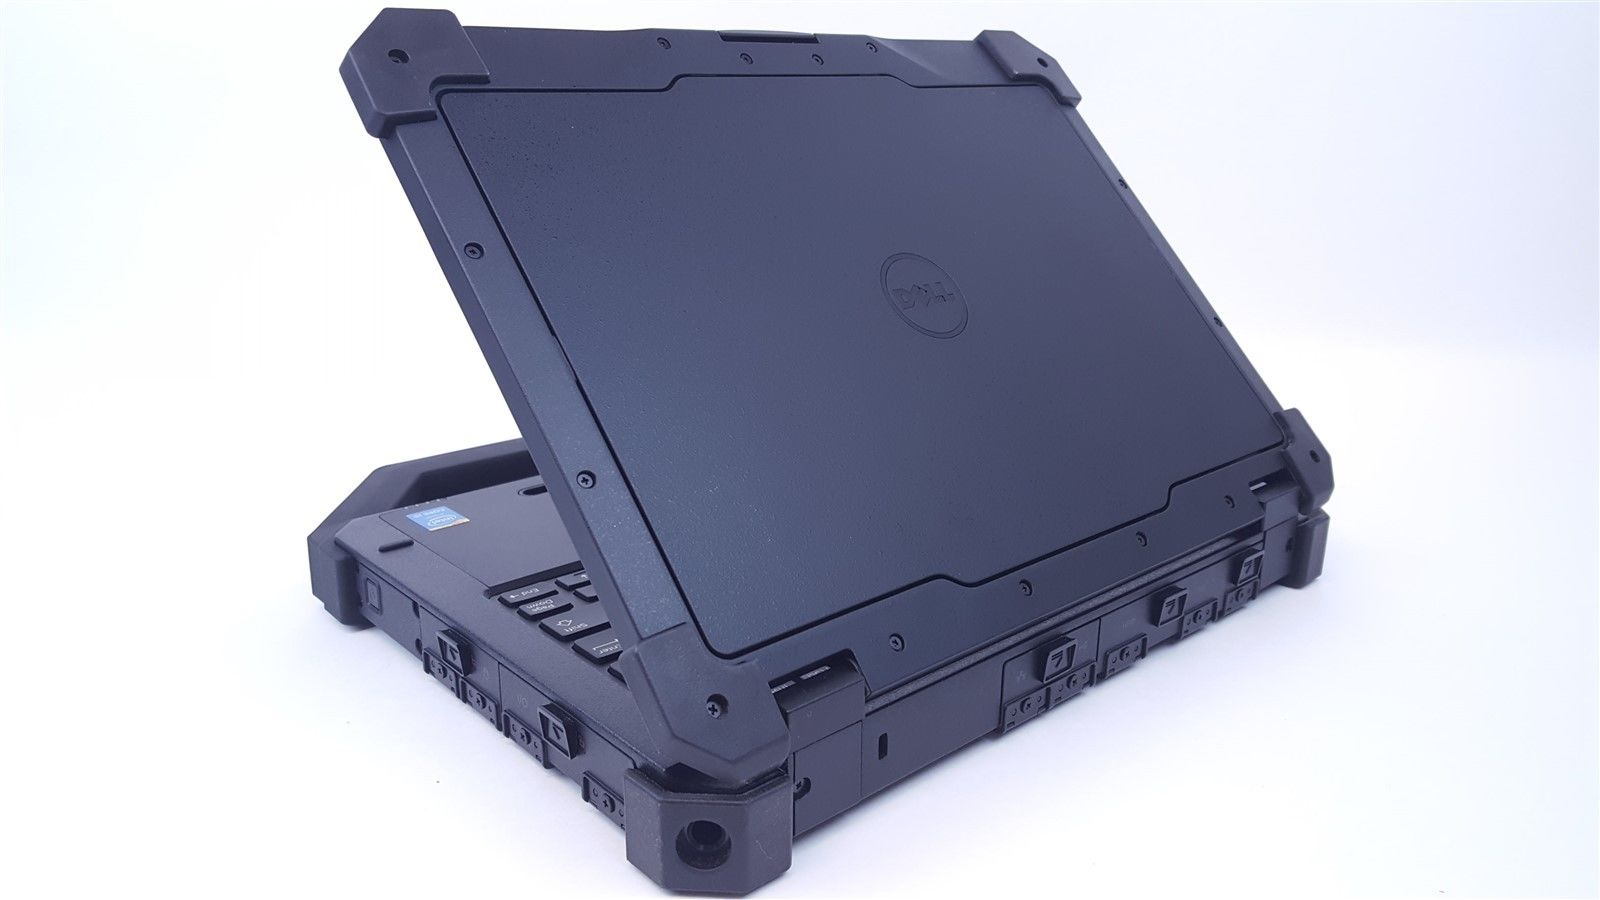 Dell Latitude 12 7204 Rugged I5-4310U 8Gb Ram Touchscreen Convertible No HDD